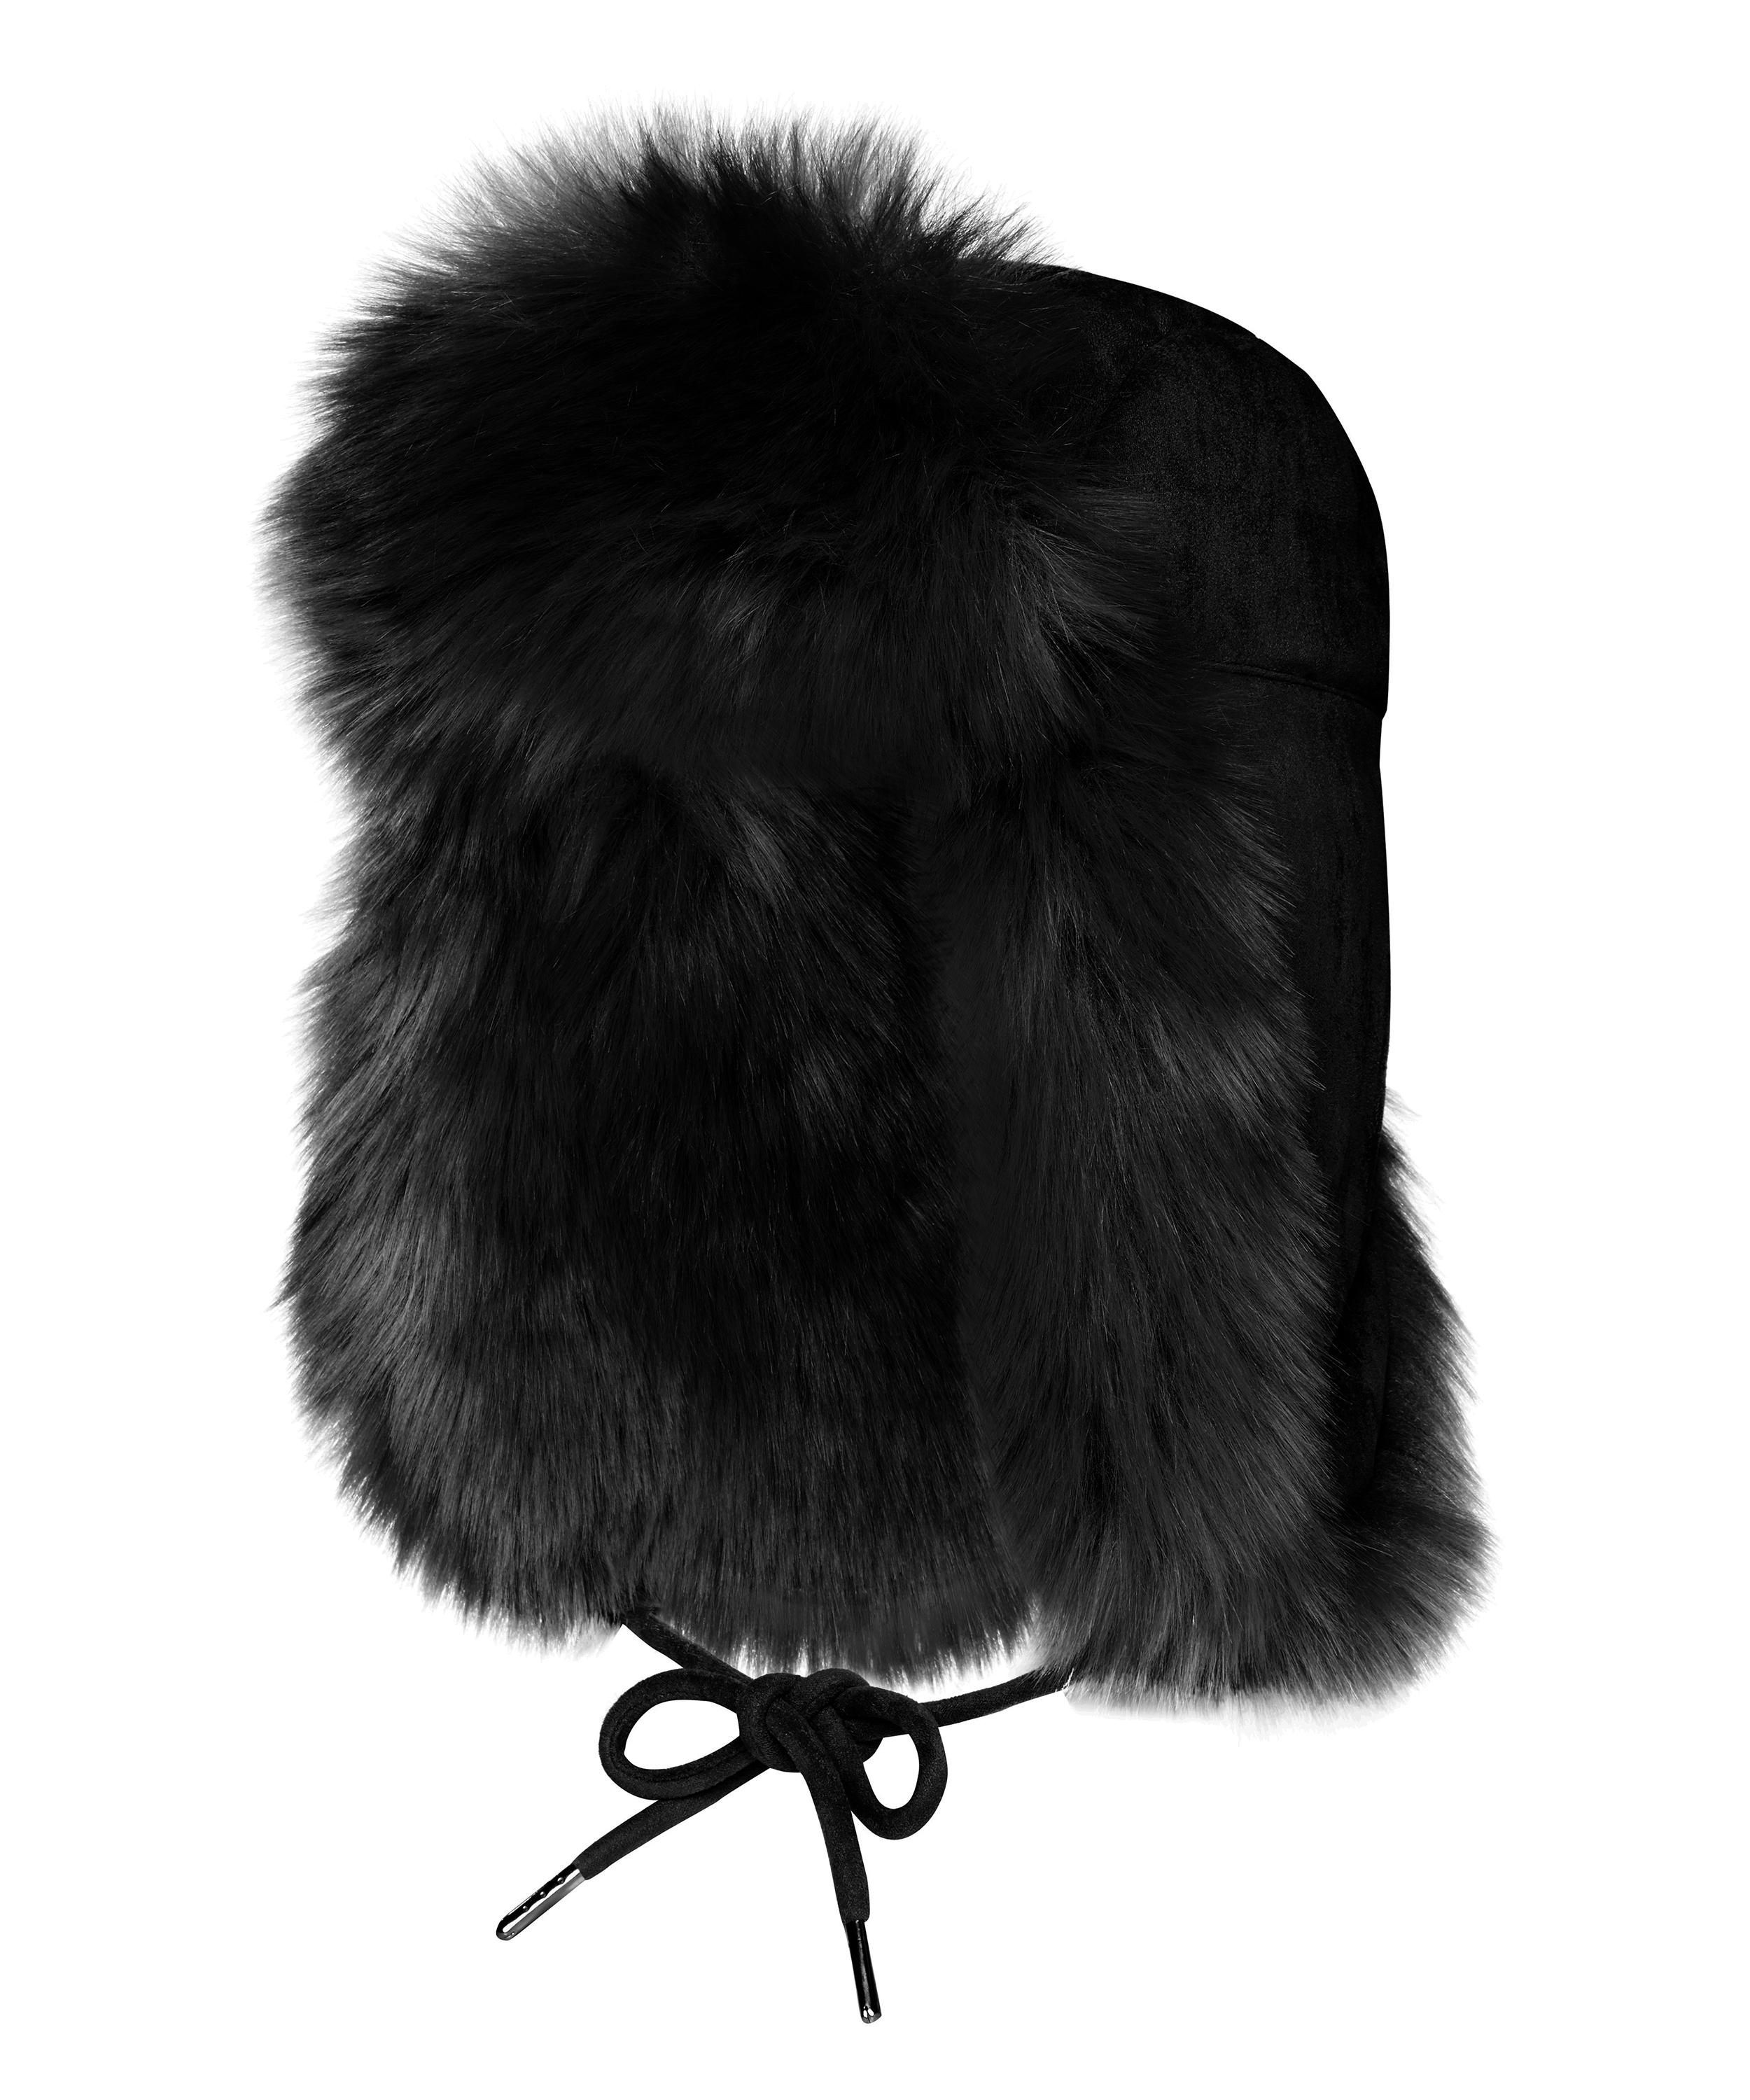 fbc7f20337d5a Helmet Head Faux Fur and Suede Trapper Hat